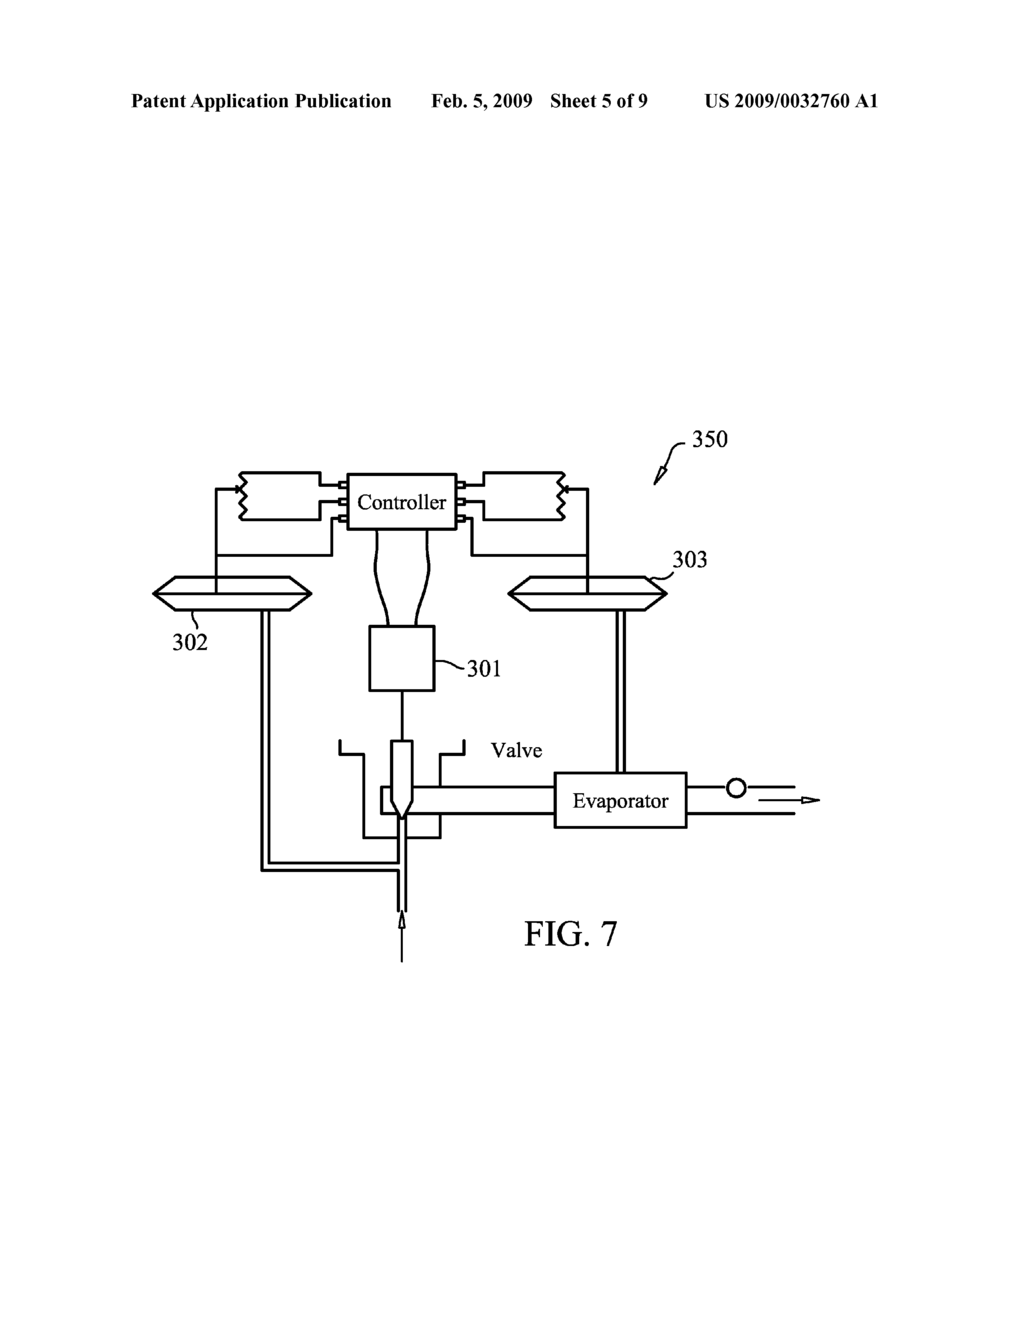 hight resolution of rotational multi vane positive displacement valve for use with a solar air conditioning system diagram schematic and image 06